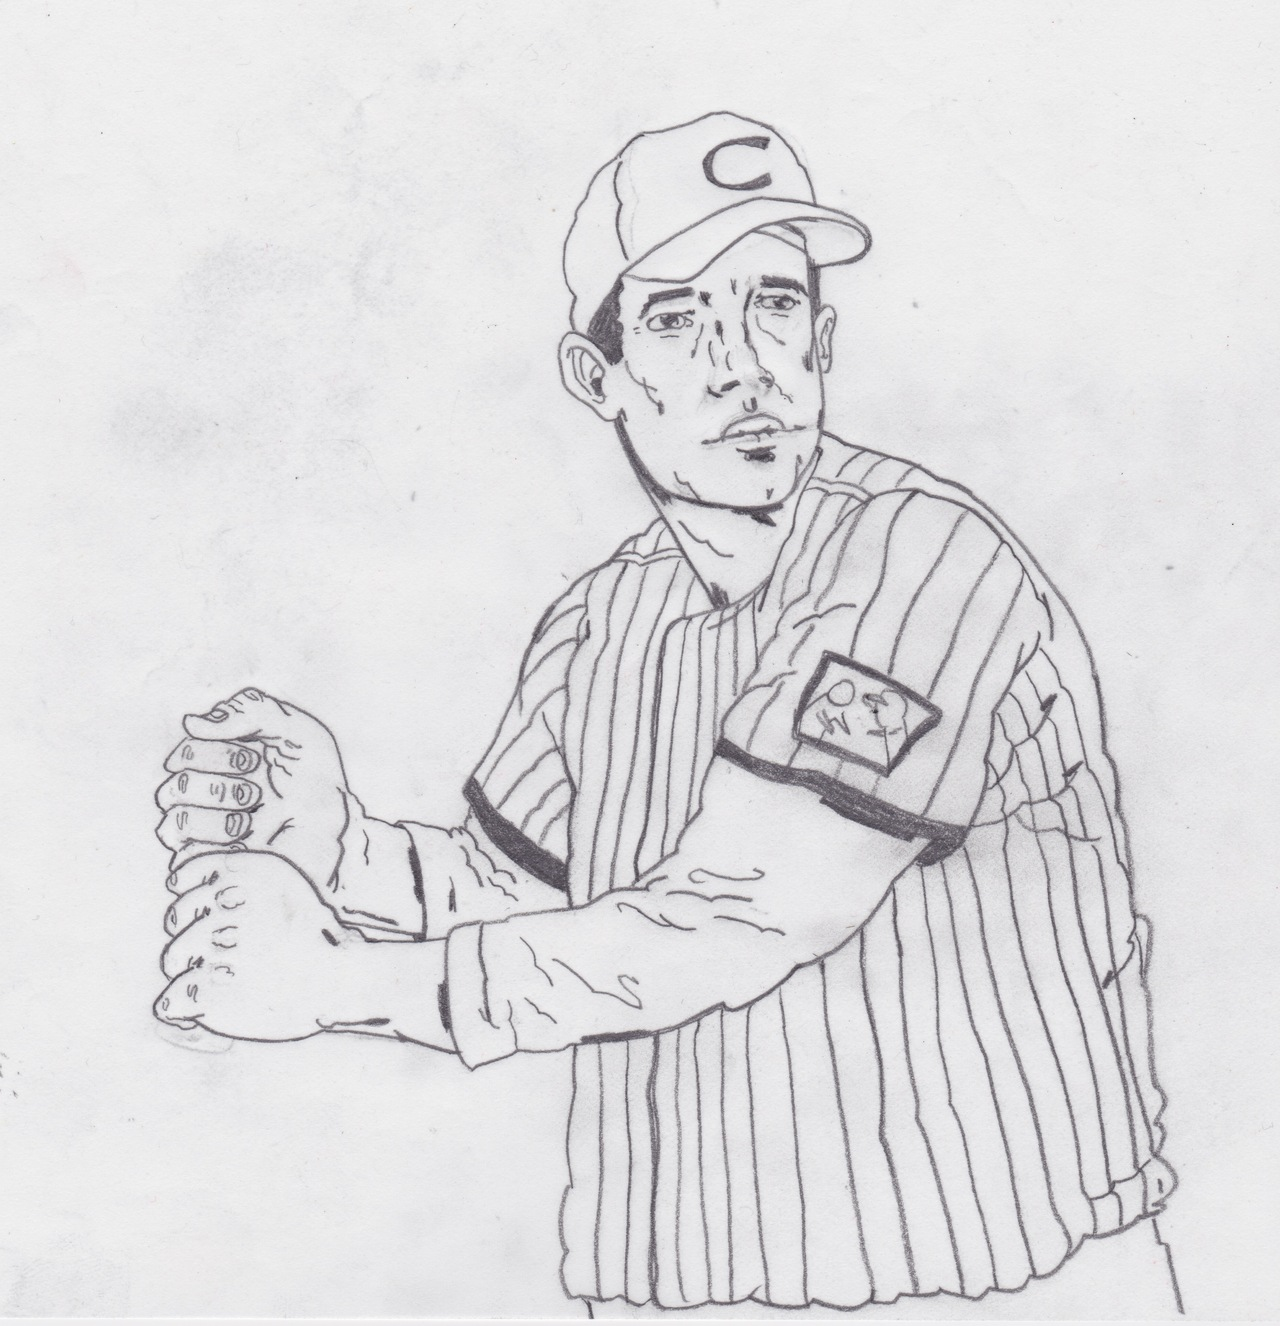 Baseball illustration sketch